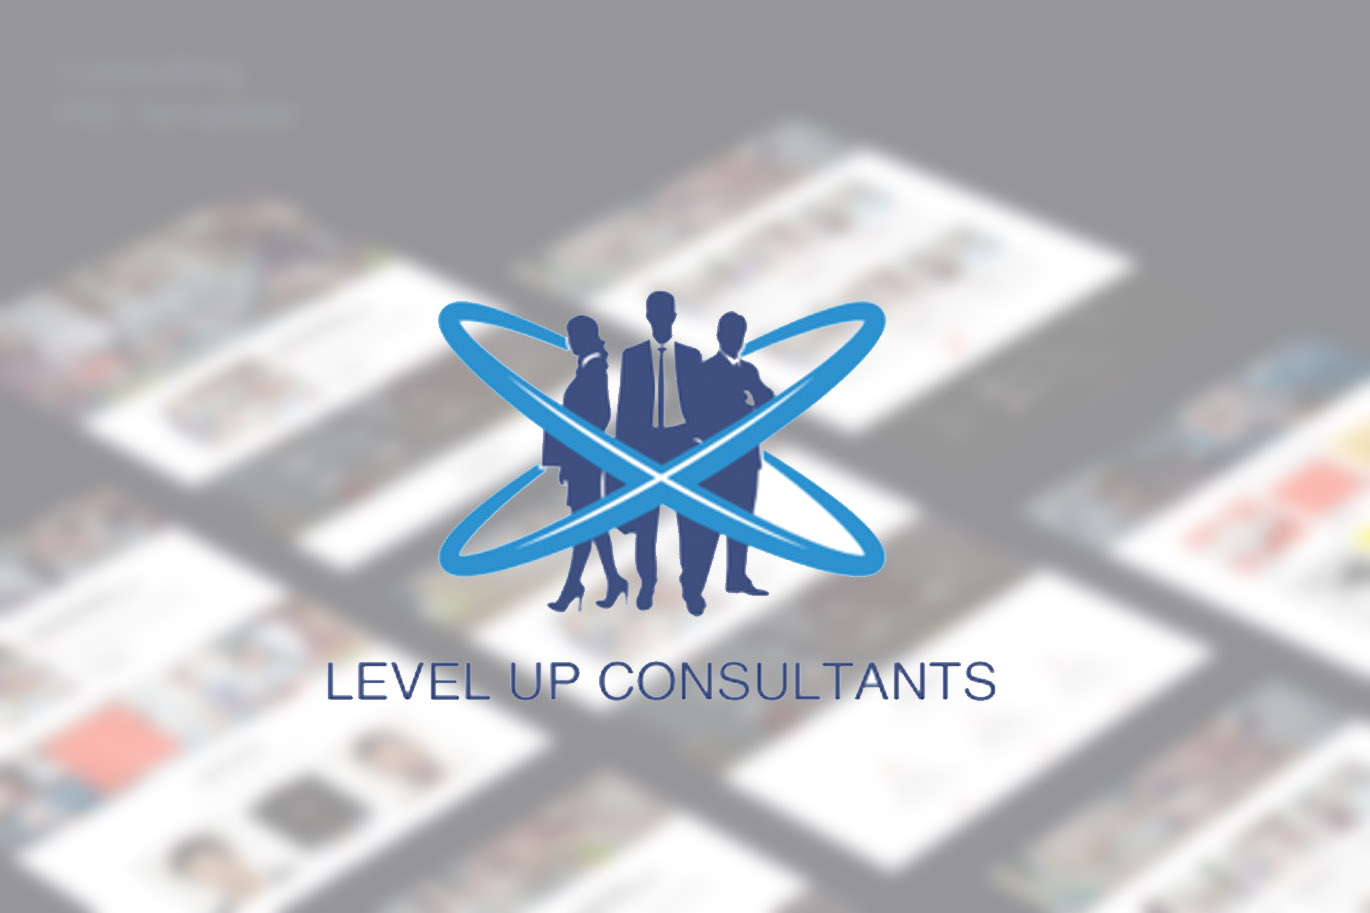 Level Up Consultant Website Development Service